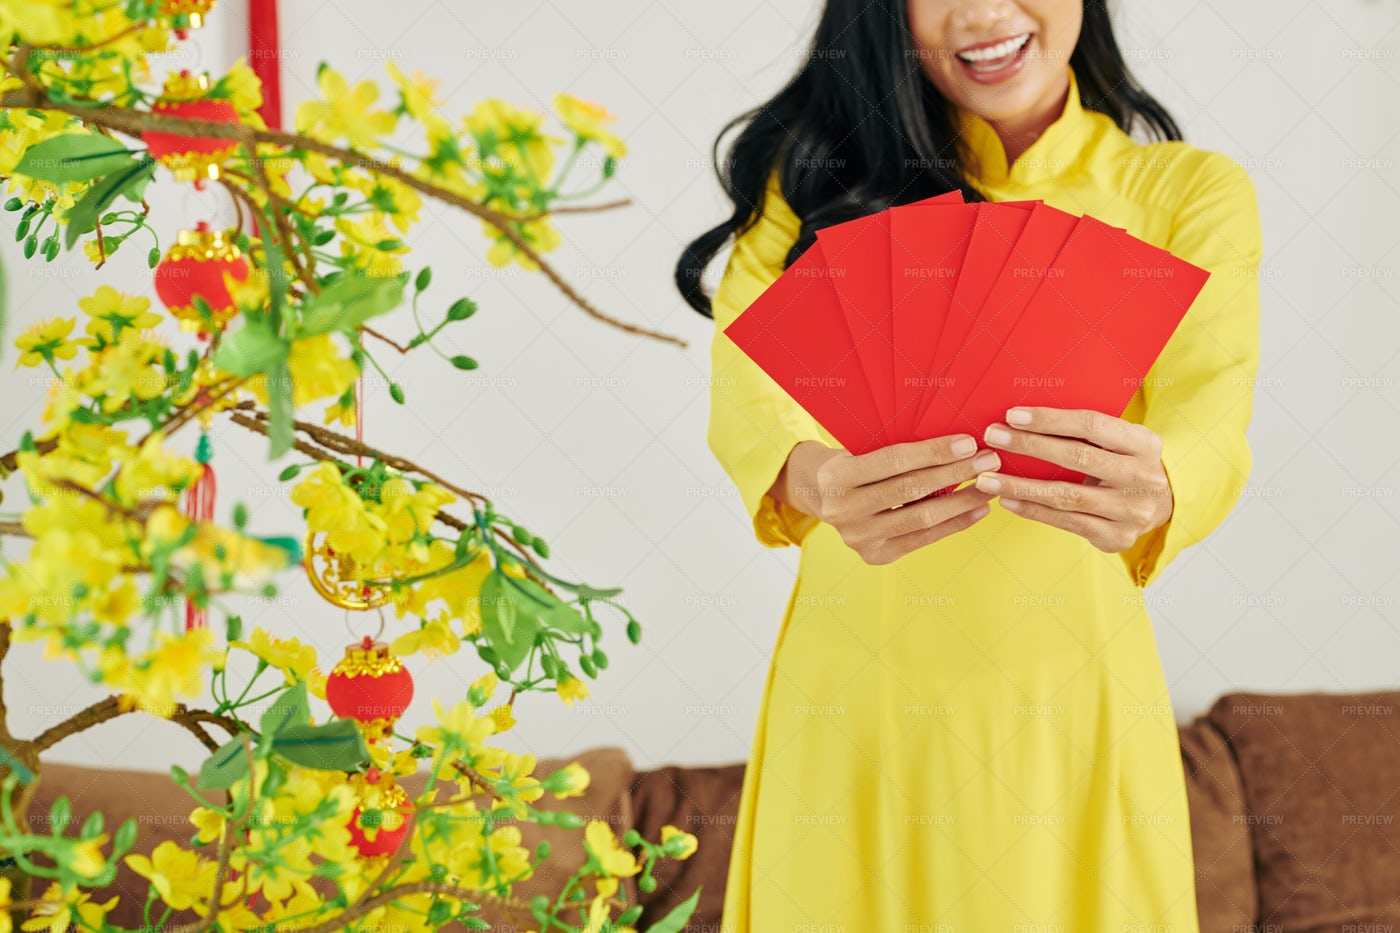 Woman Showing Envelopes With Gifts: Stock Photos